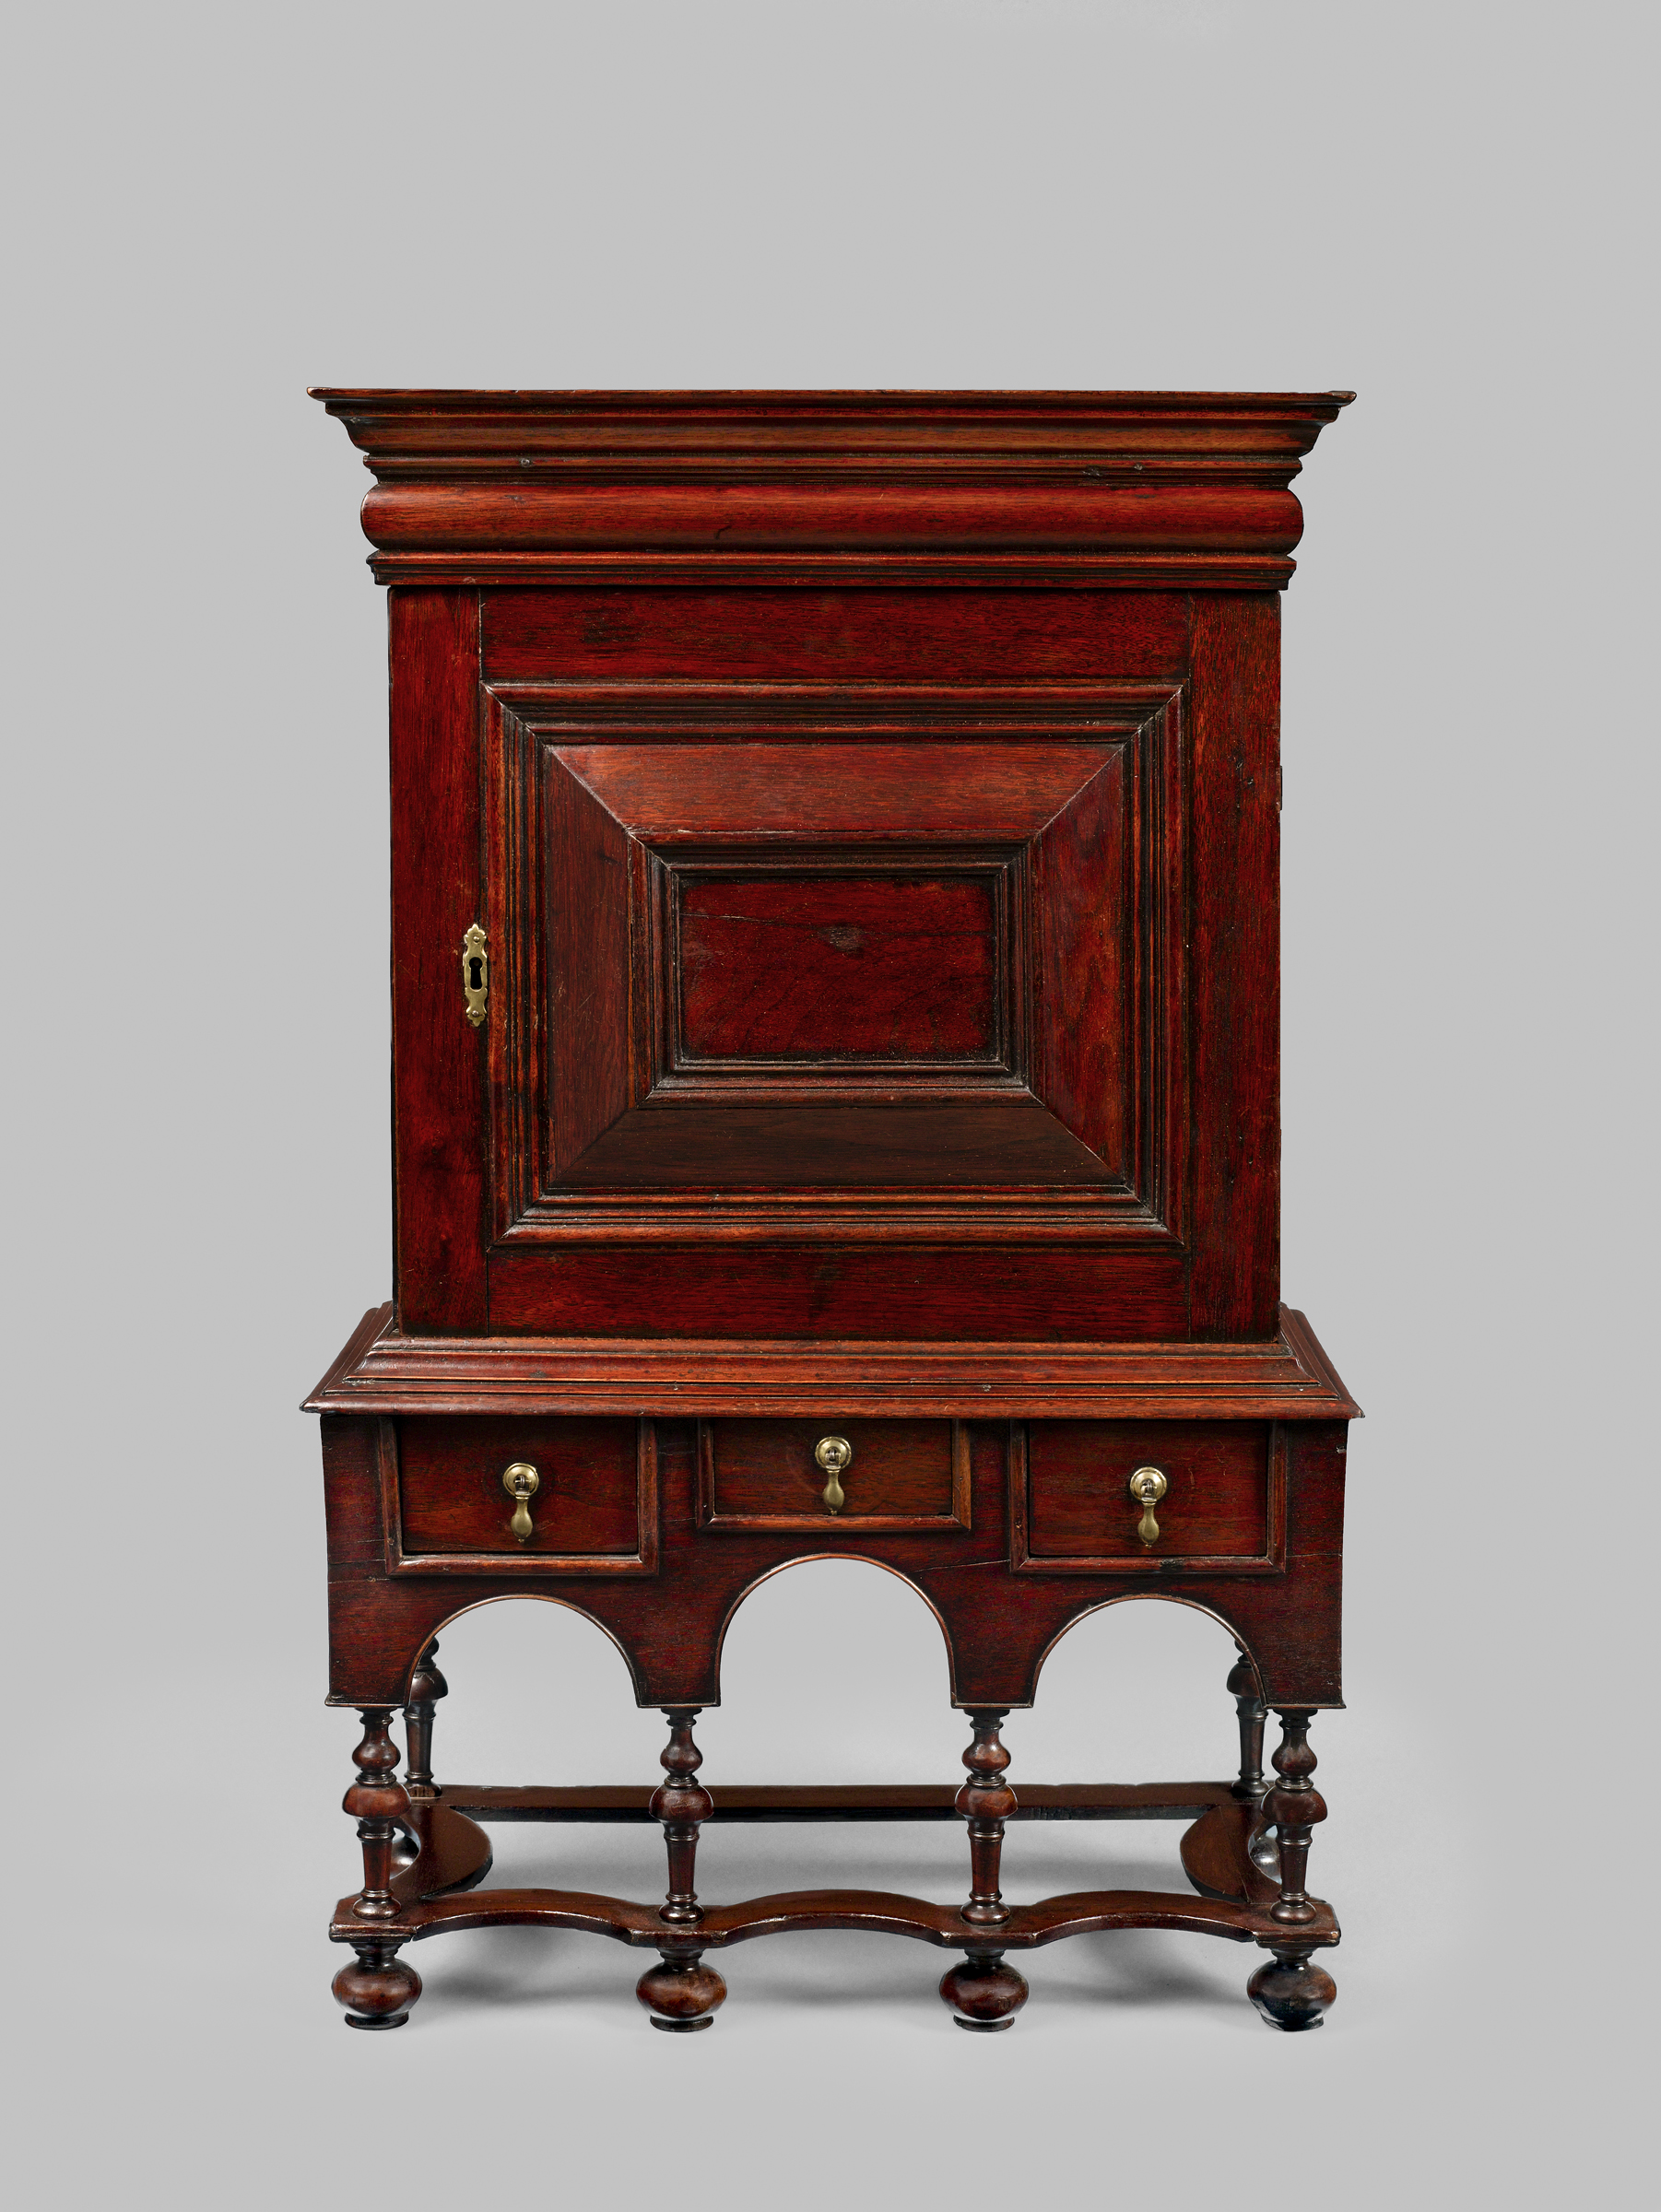 """A Rare William and Mary Cabinet: Some Thoughts on Its Function and Origin"""